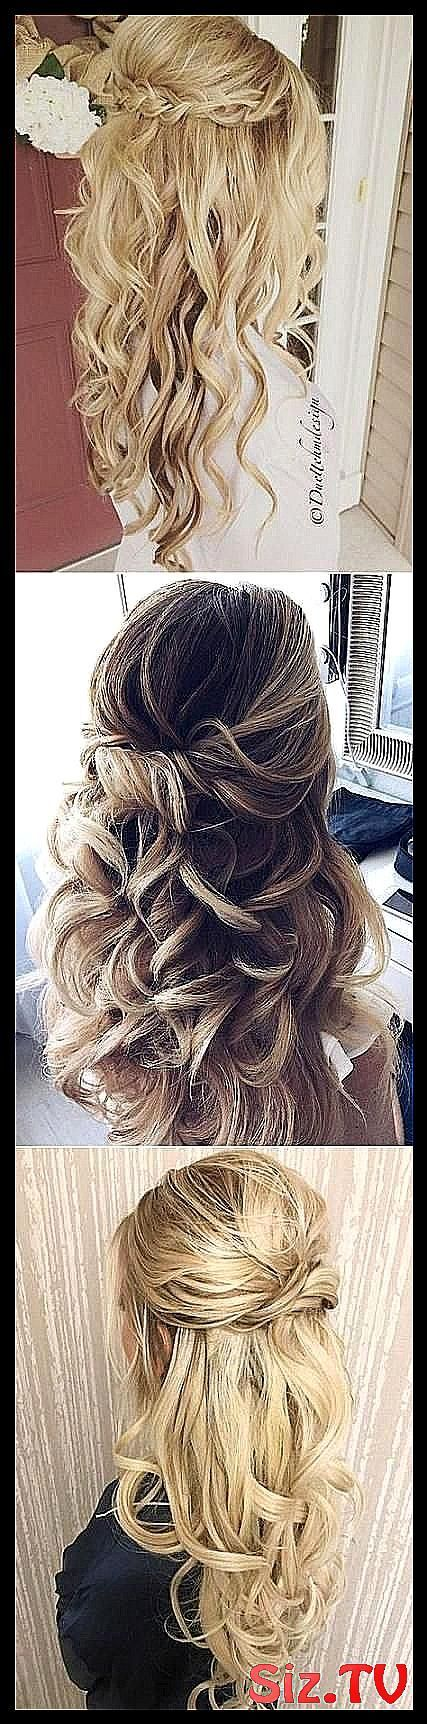 Hairstyles Prom Straight Half Up 19 Ideas #Boho_Wedding_bridesmaids_half_up #Hairstyles #ideas #prom